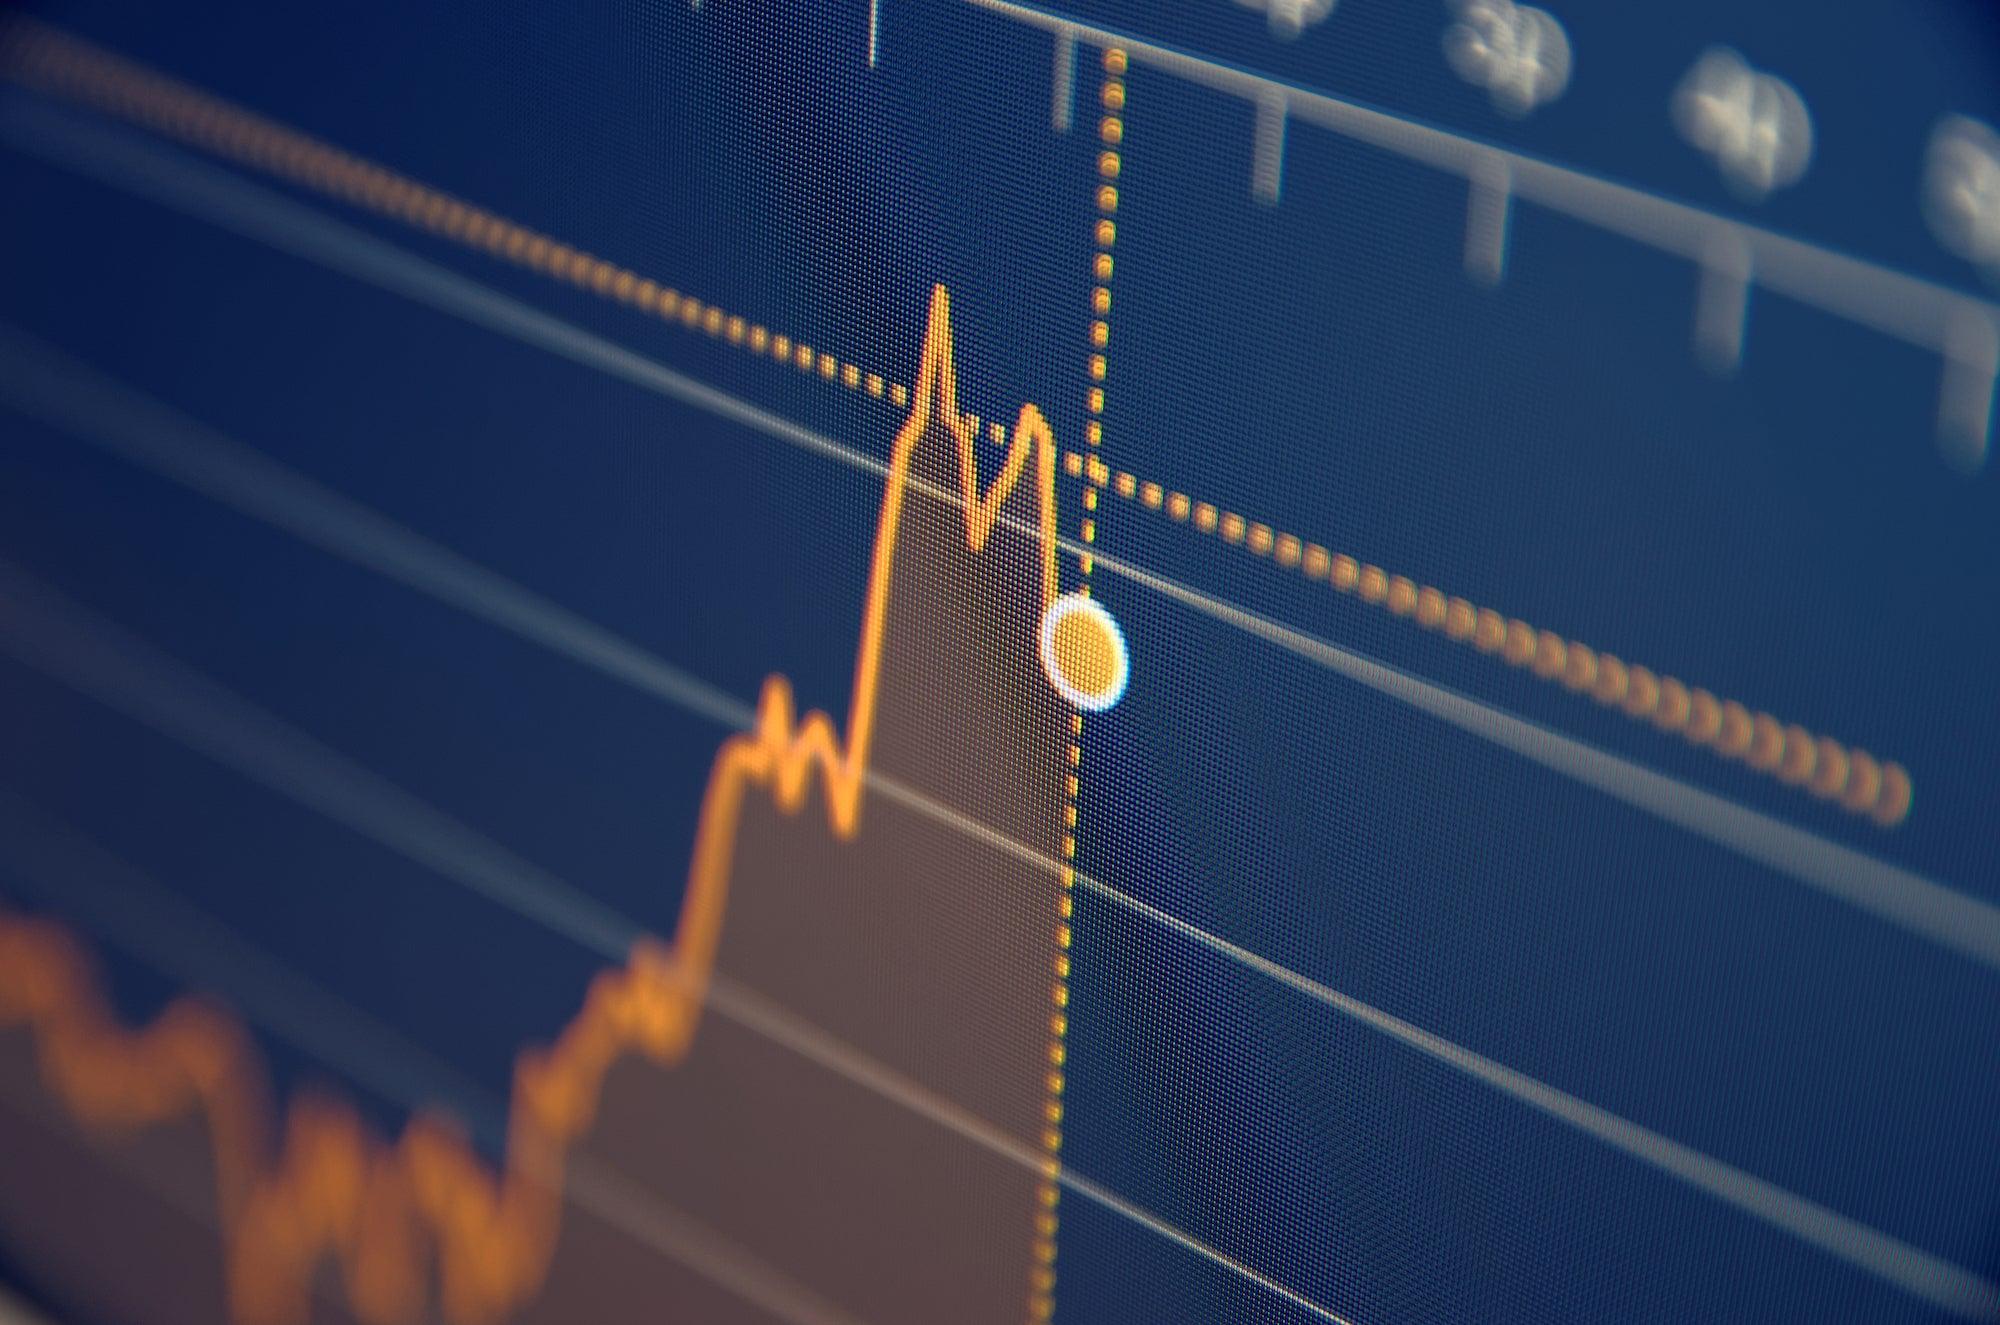 A blue and orange chart showing a stock price moving higher